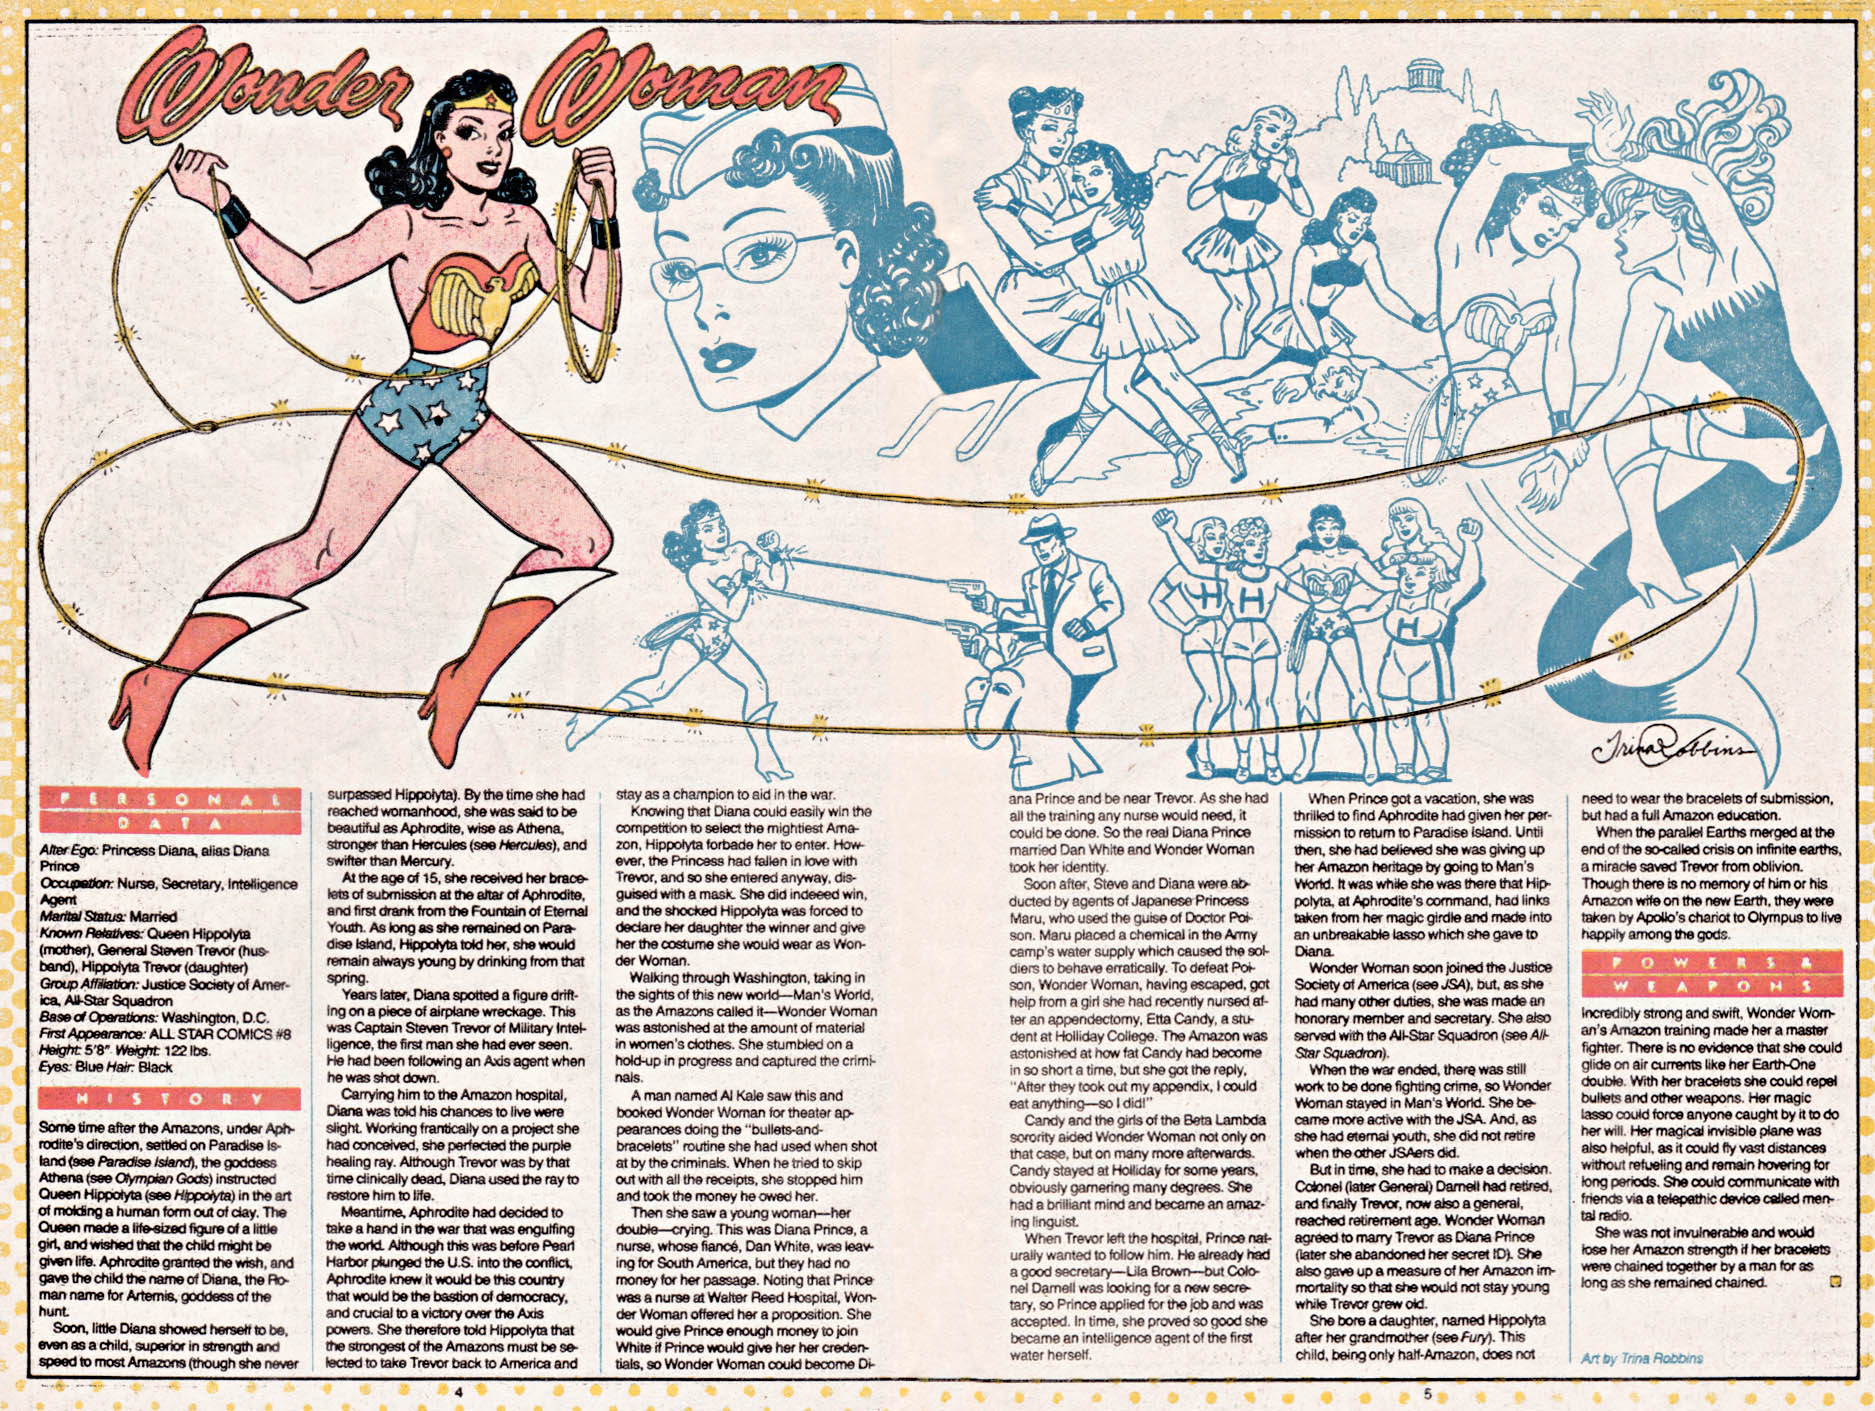 Wonder Woman by Trina Robbins - Who's Who: The Definitive Directory of the DC Universe #26